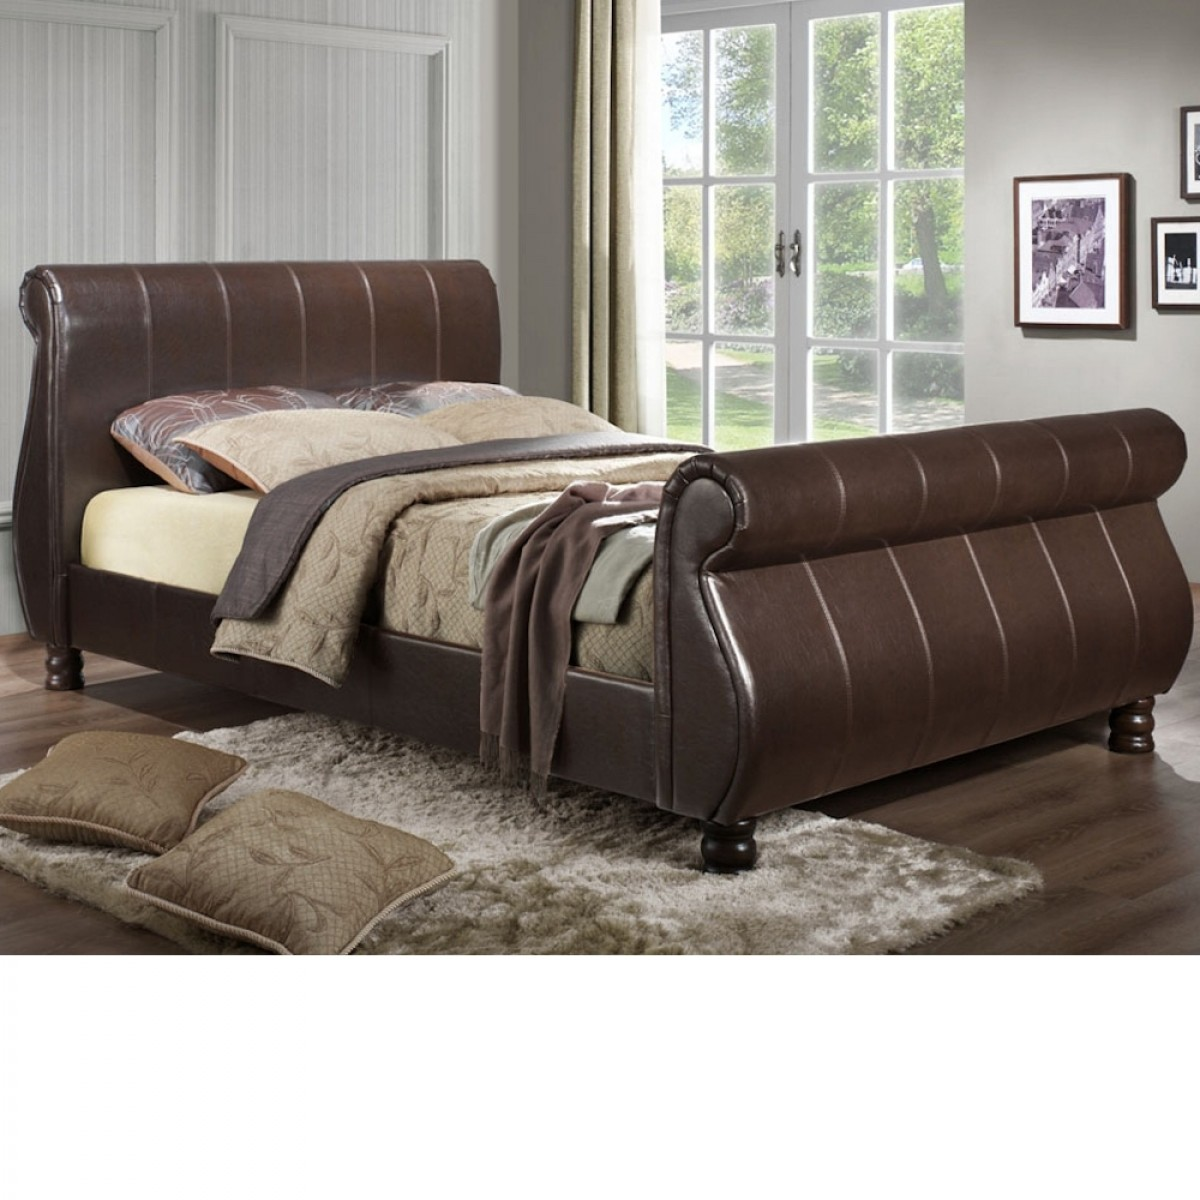 Marseille Brown Leather Scroll Sleigh Bed